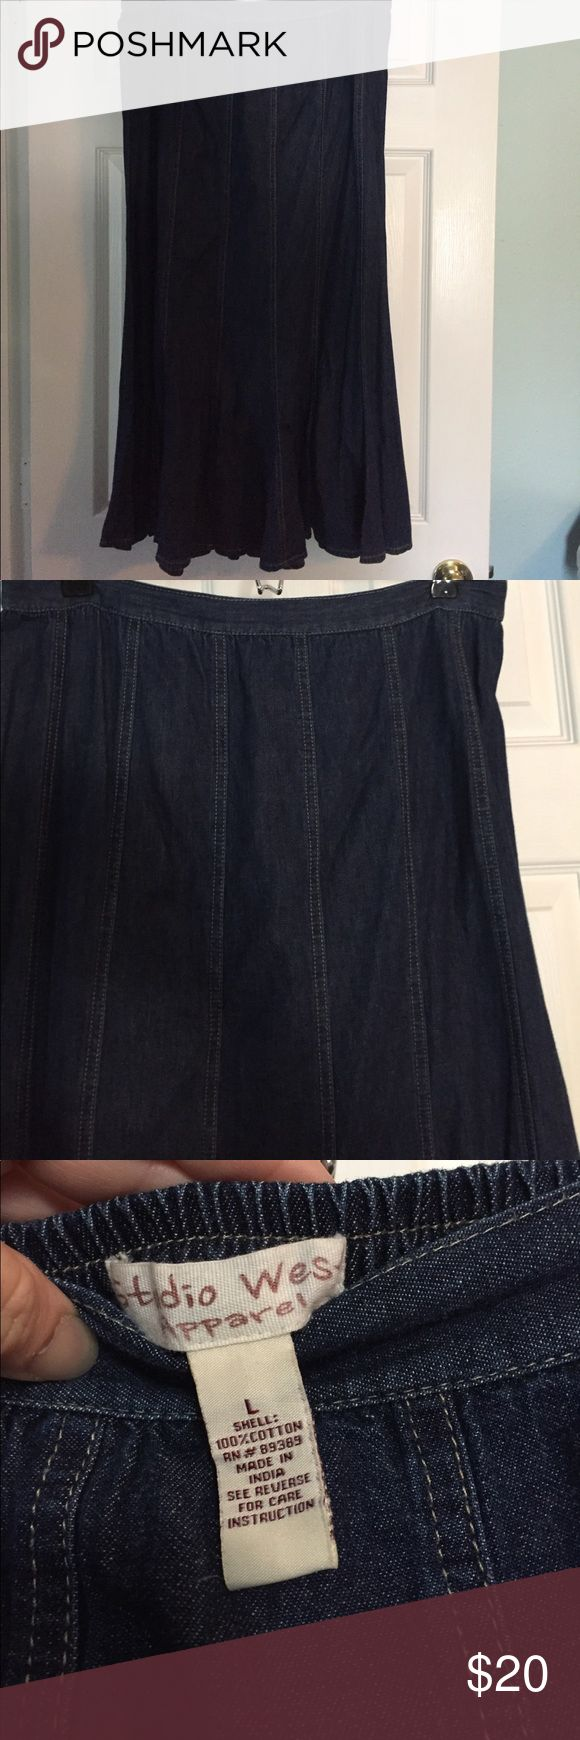 "Like New Ladies Size L Long Denim Skirt Like new!! Worn once, washed and been hanging in my closet since. Beautiful skirt just didn't work for me. Dark denim, waistband in front and elastic in the back, more fitted/a-line style at the top and then flares out very full at the bottom- sort of trumpet style. Length 33"", waist 33"" unstretched, hips 44"" as pictured. When I was measuring the length I noticed 1 tiny place (less than 1/4"") where thread has came out on the hem as pictured otherwise…"